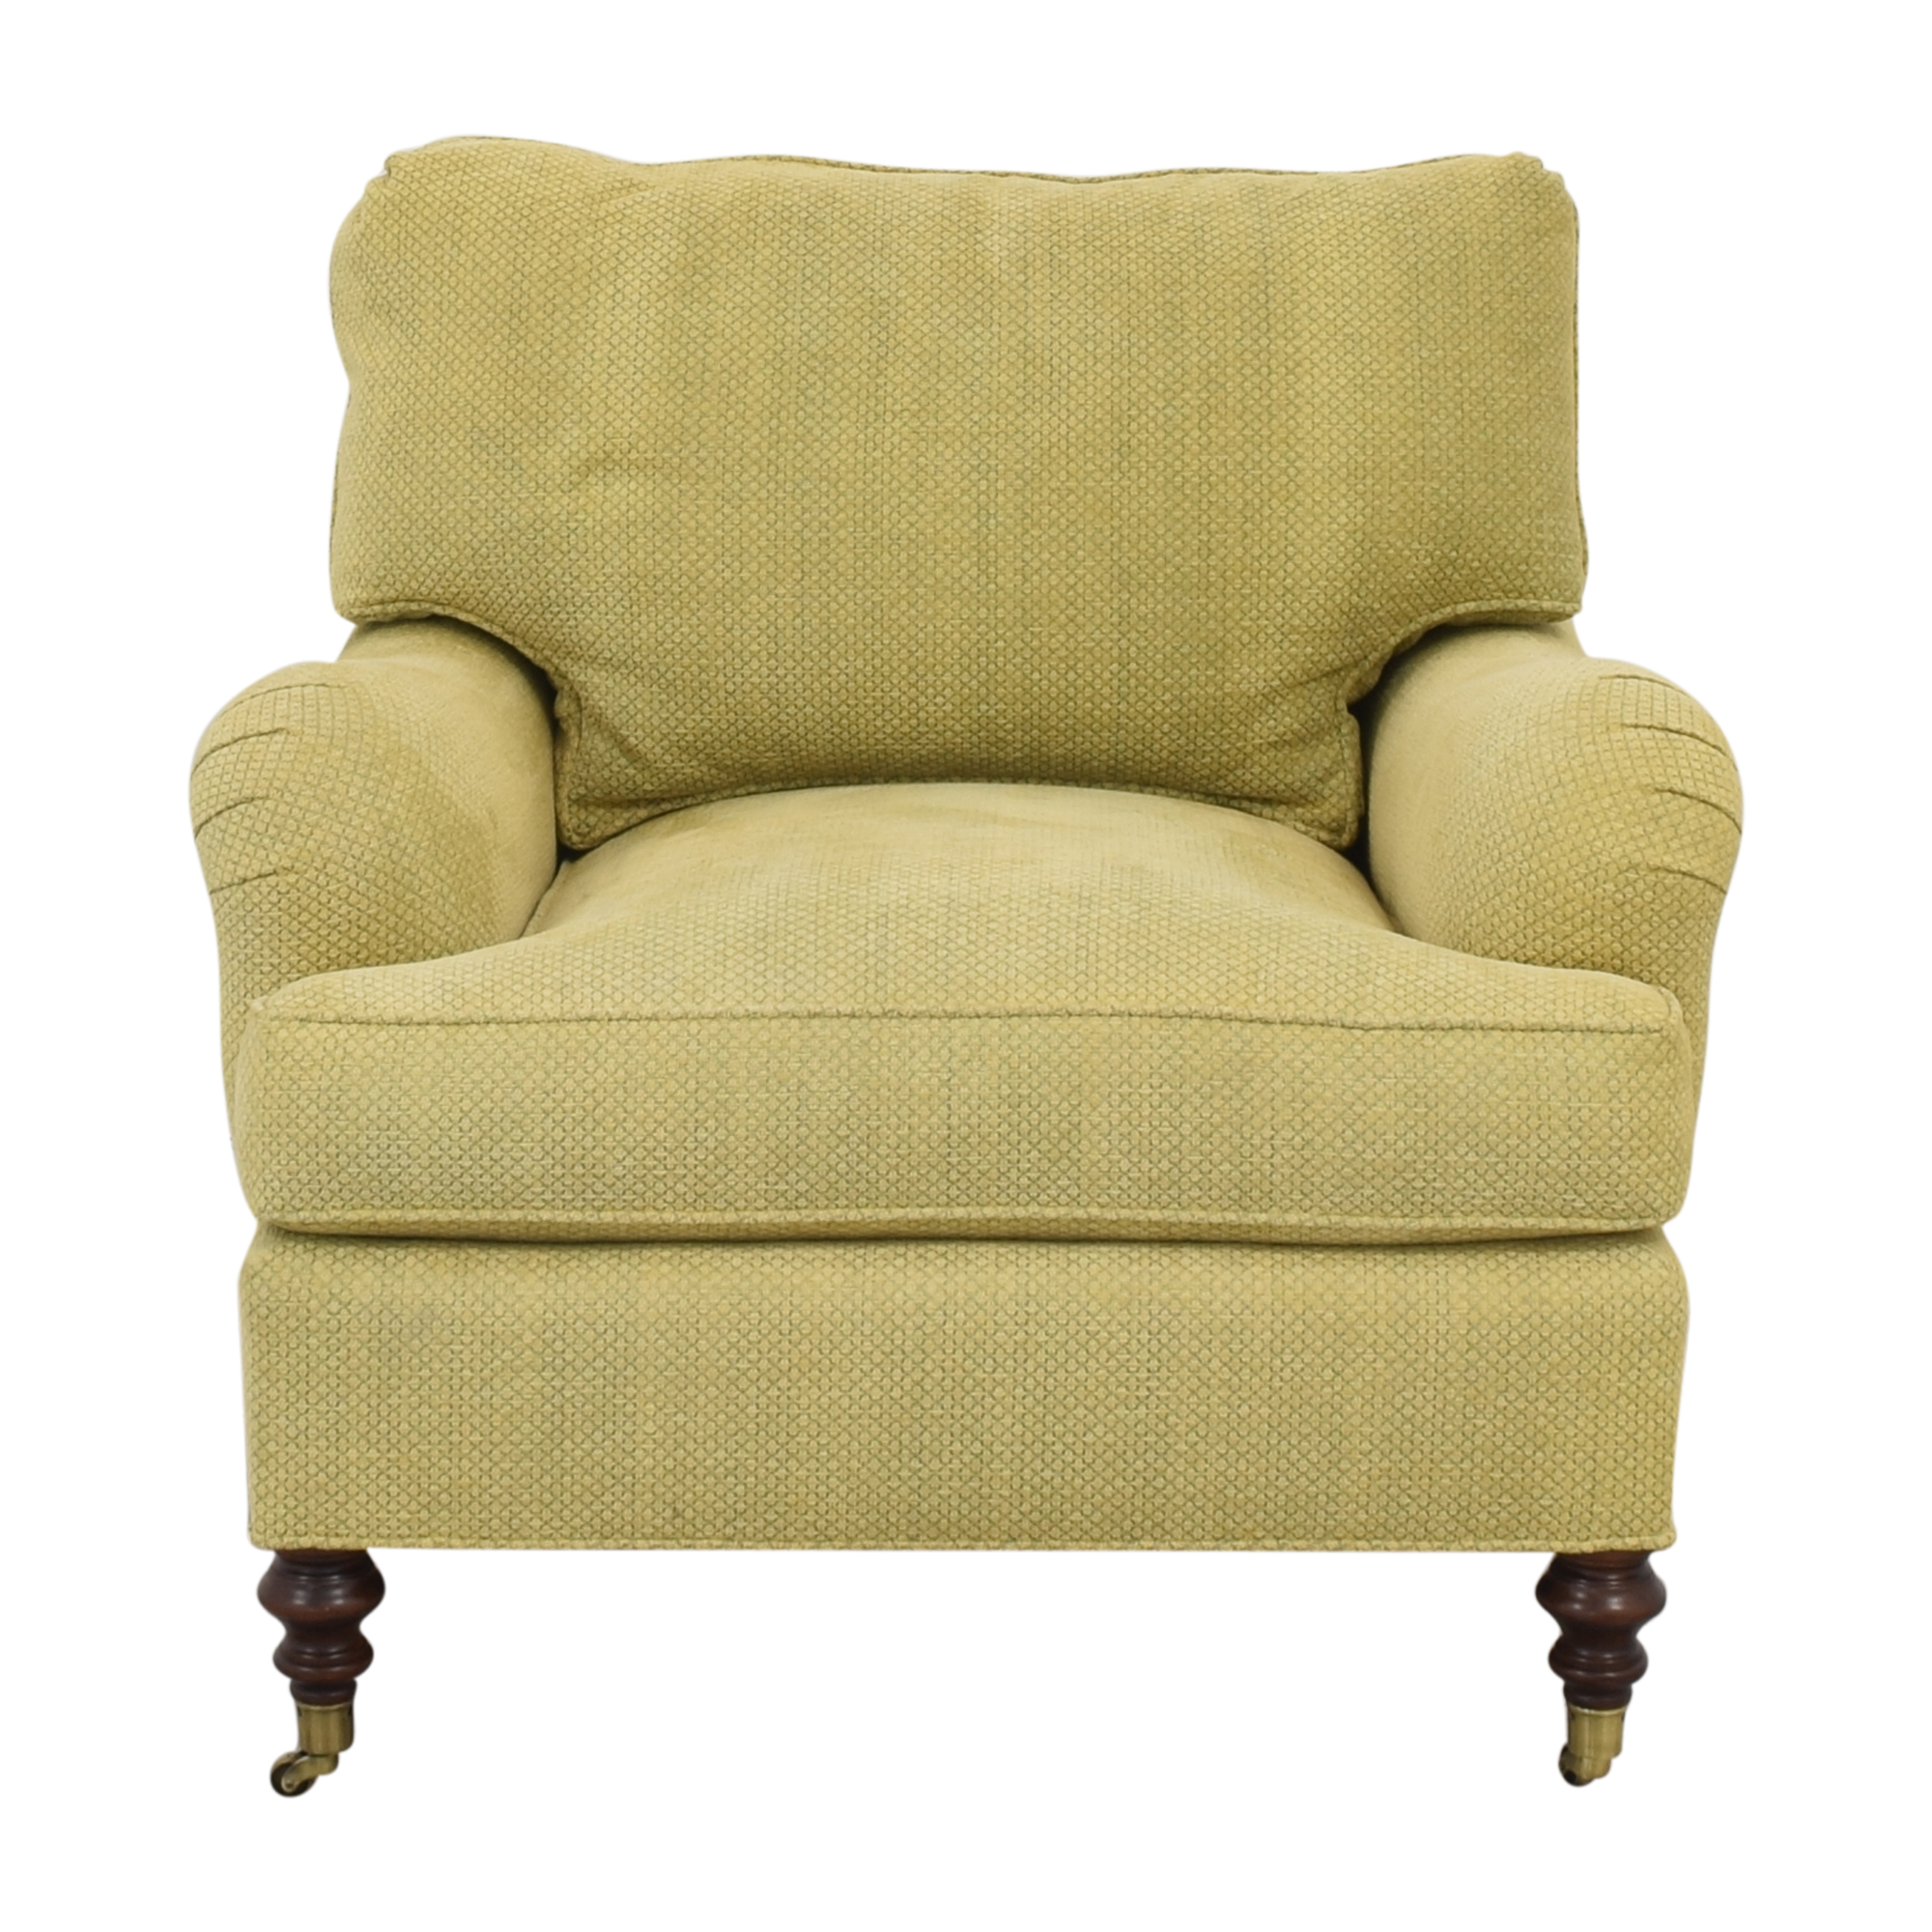 shop Edward Ferrell + Lewis Mittman Berkley Club Chair Ferrell Mittman Accent Chairs